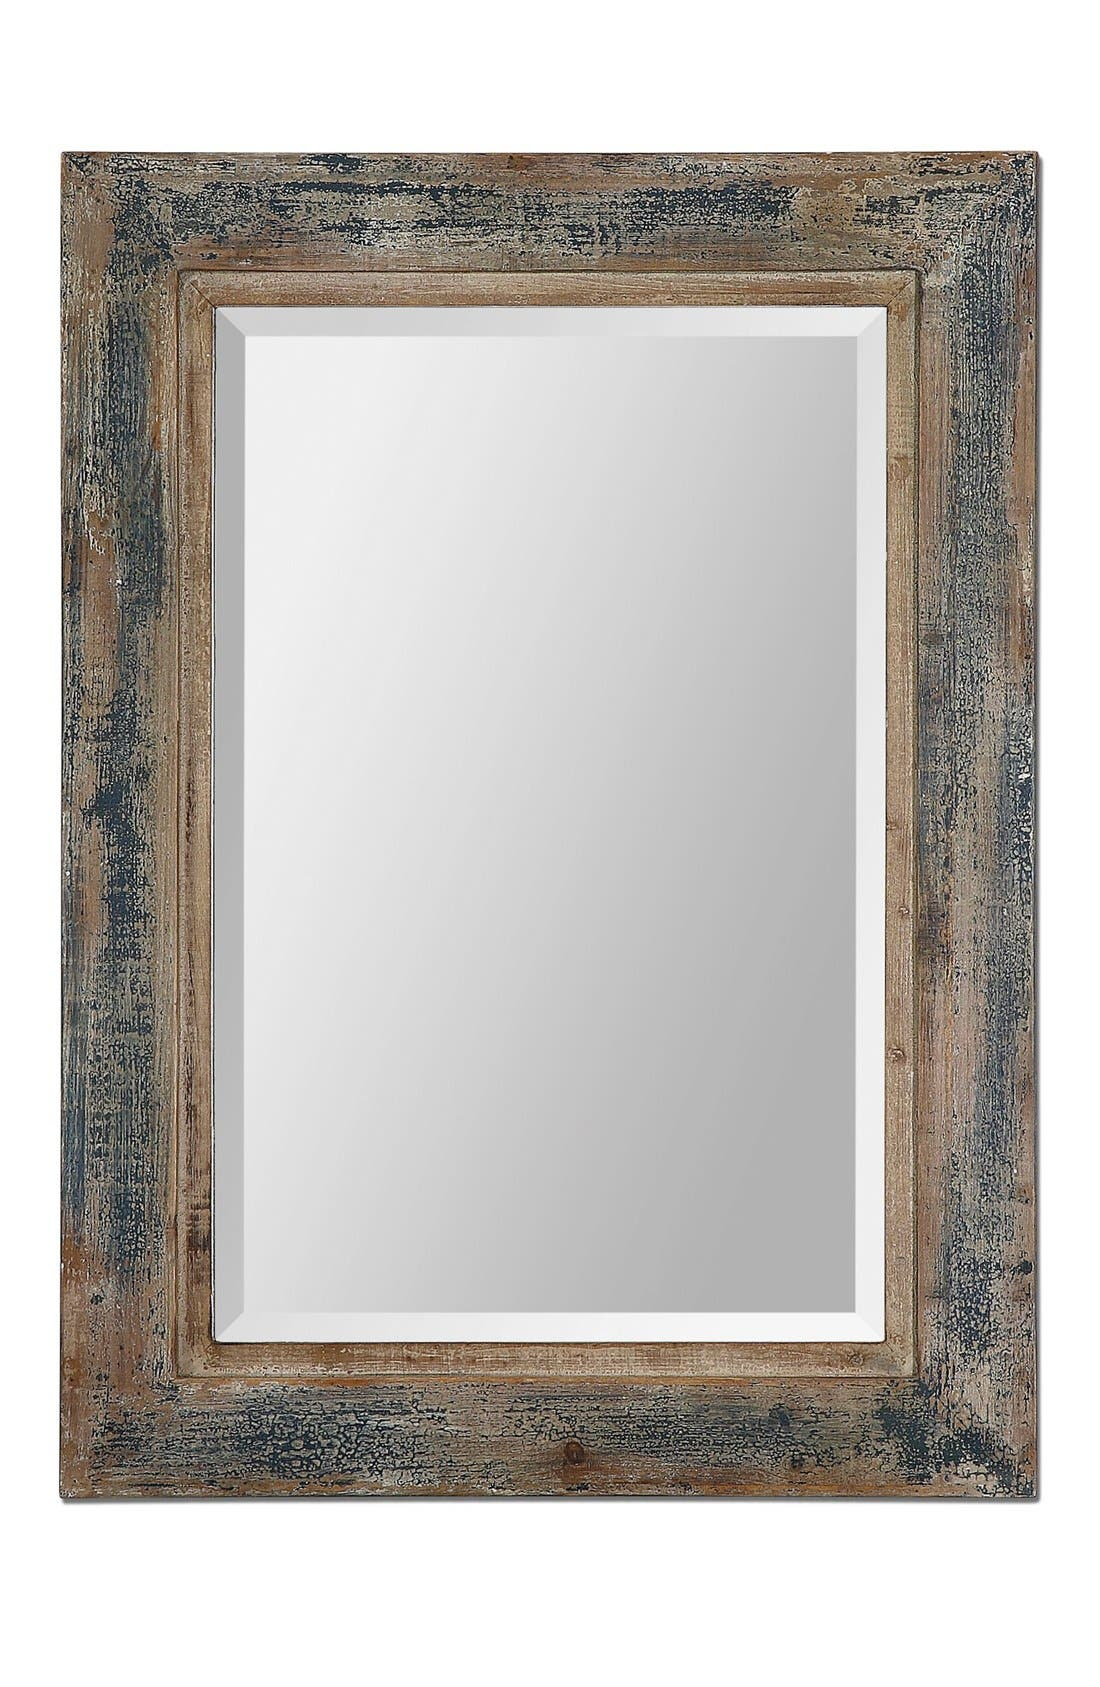 'Bozeman' Distressed Wooden Mirror,                         Main,                         color,